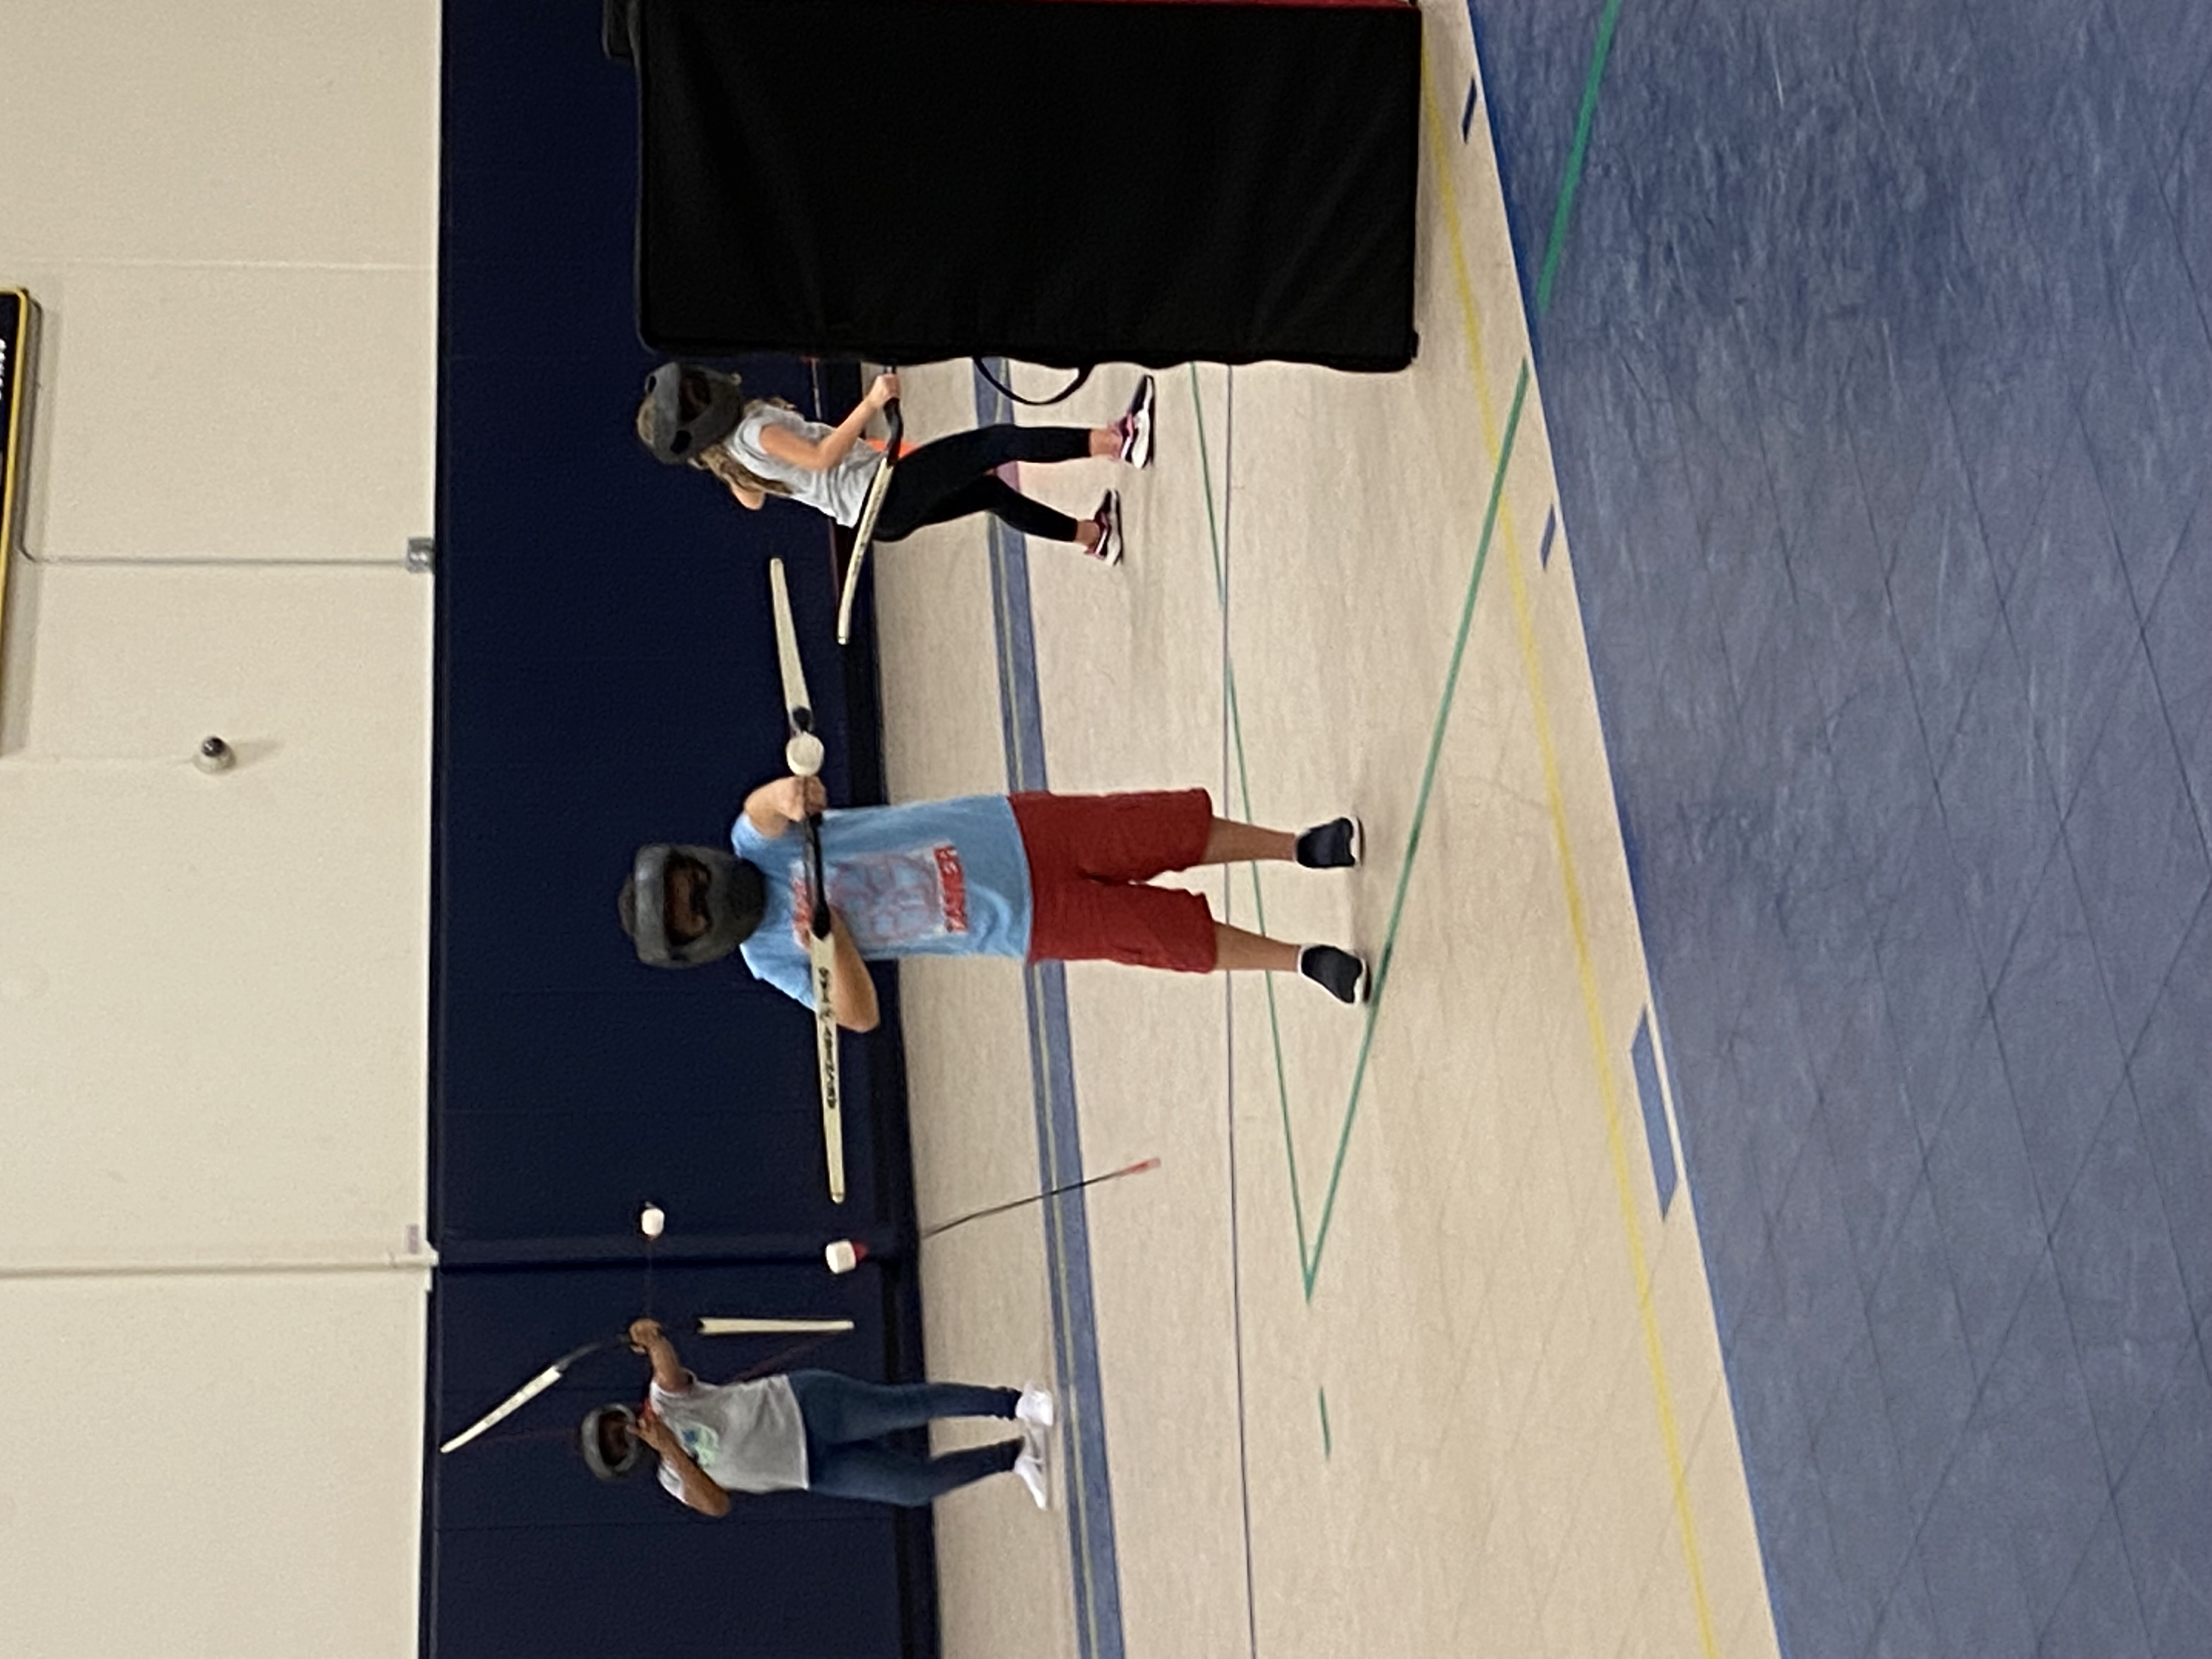 Archery Tag Image number 3